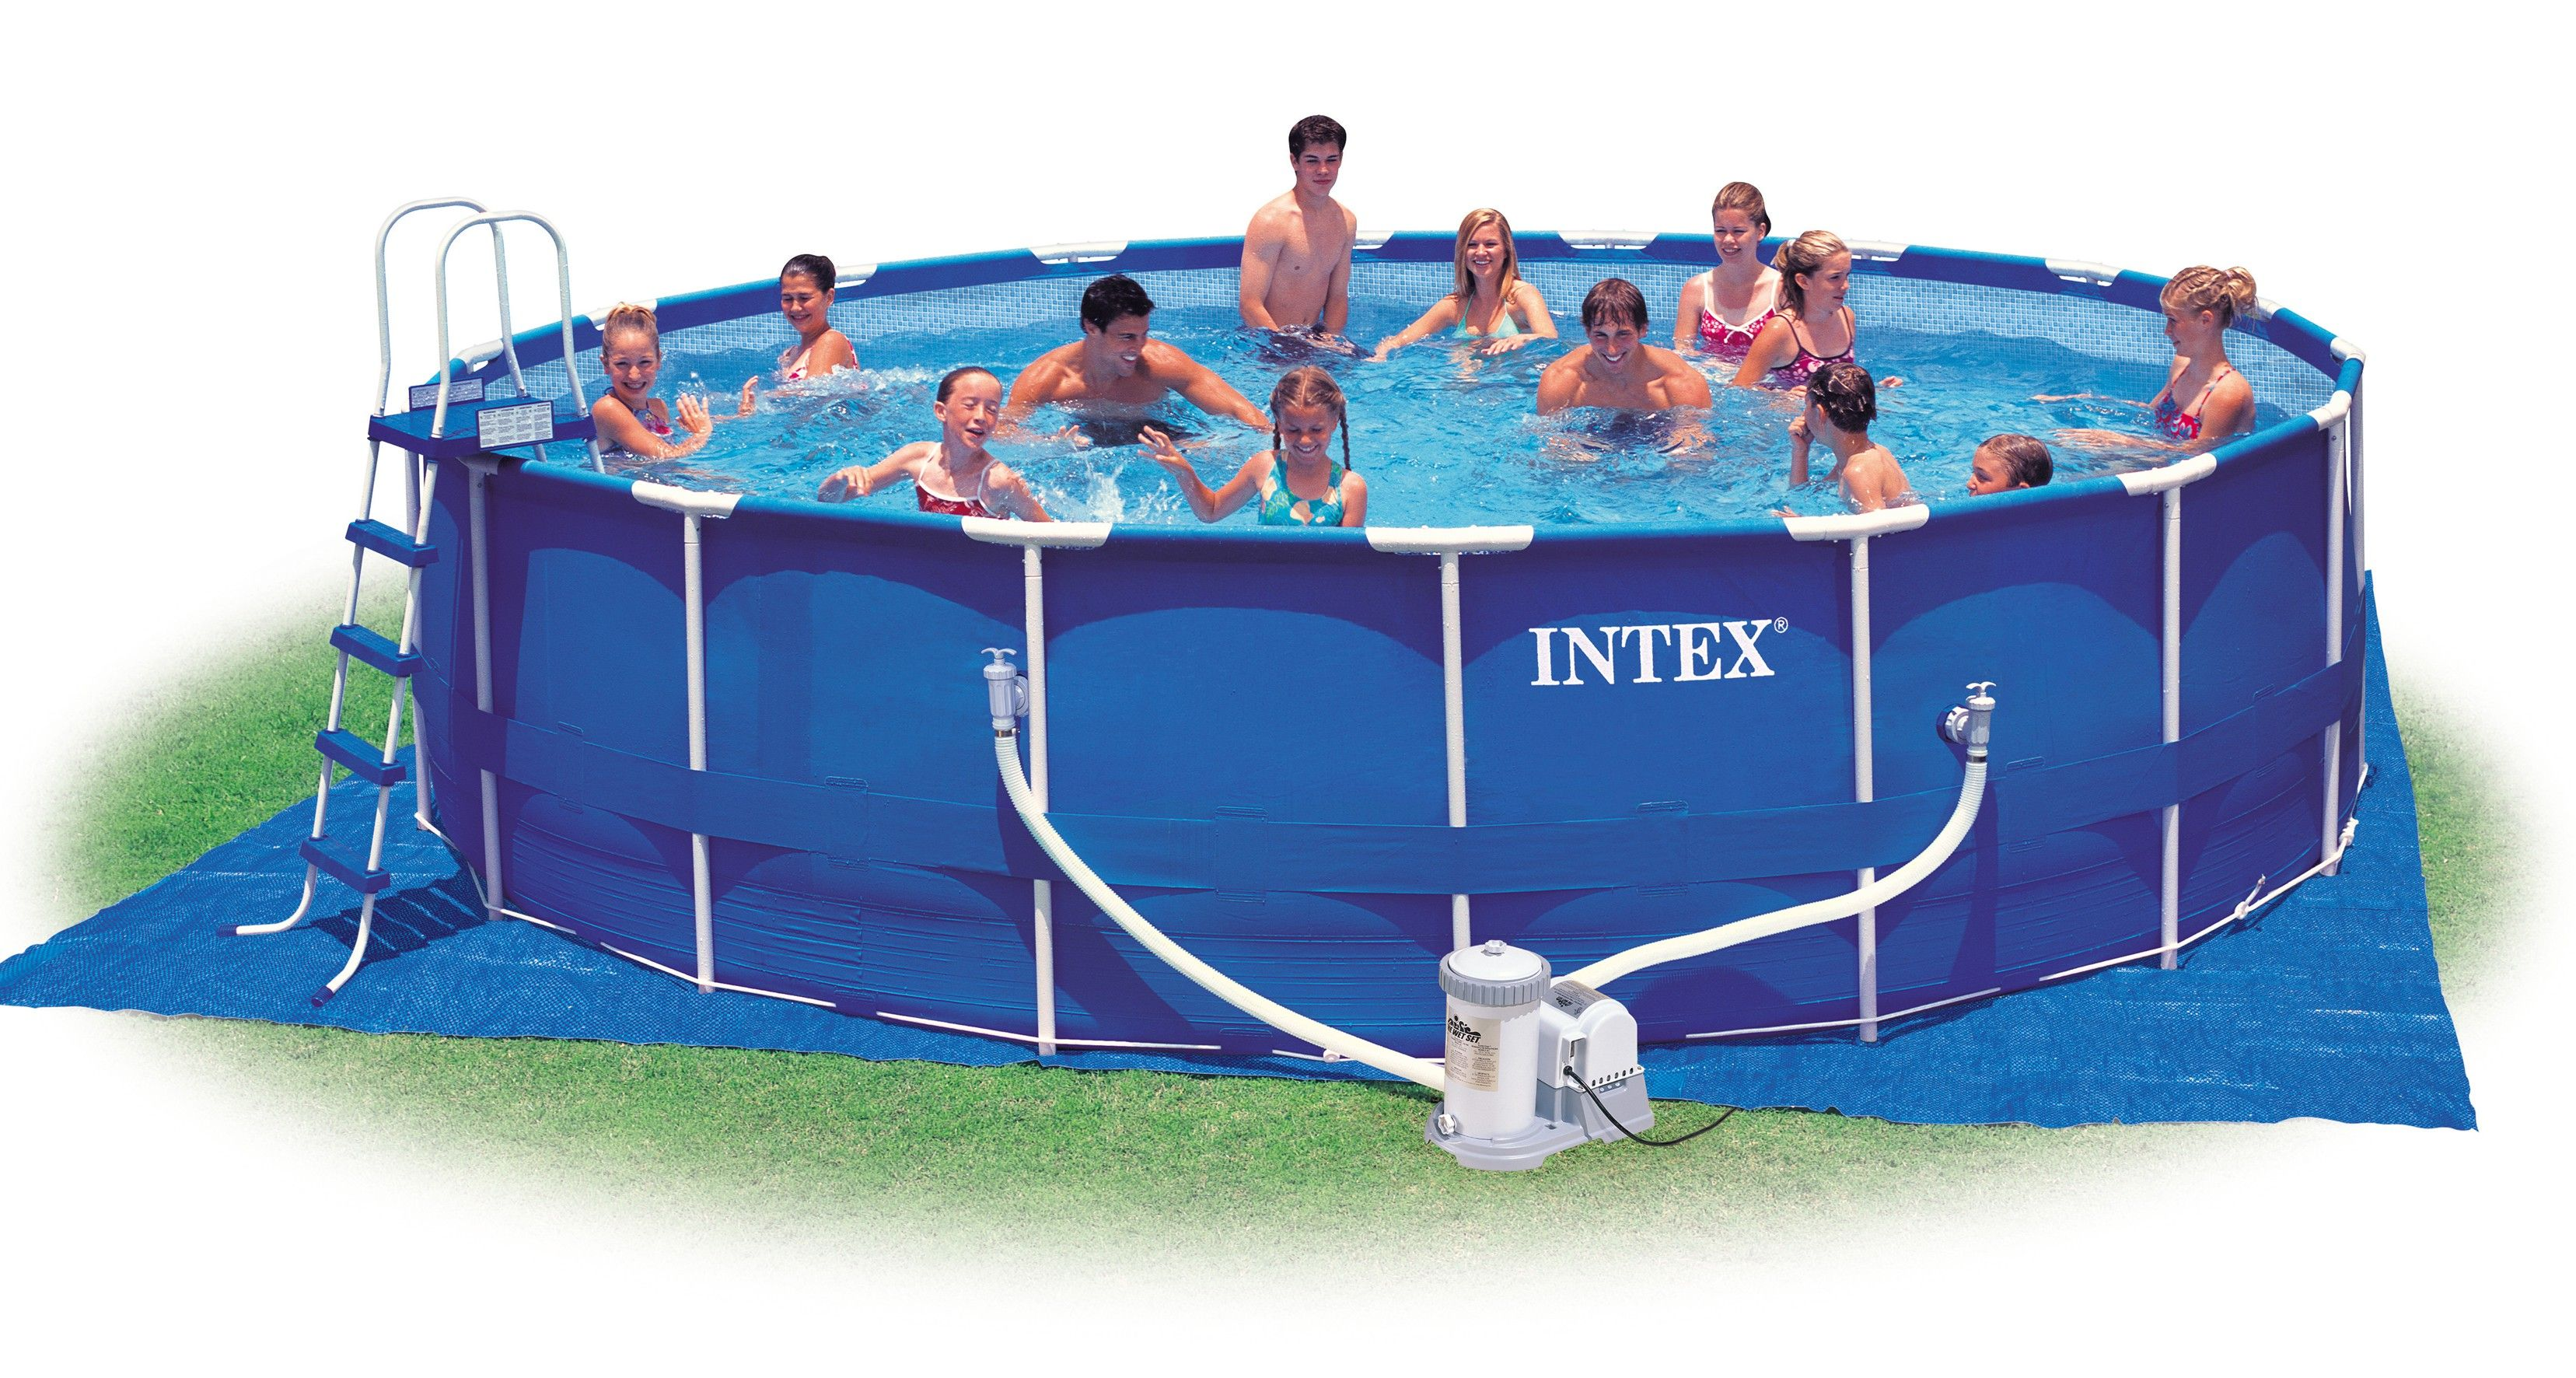 Gartenpool Günstig Intex Pool Intex Bodenplane Unterlage 472 Cm X 472 Cm Intex